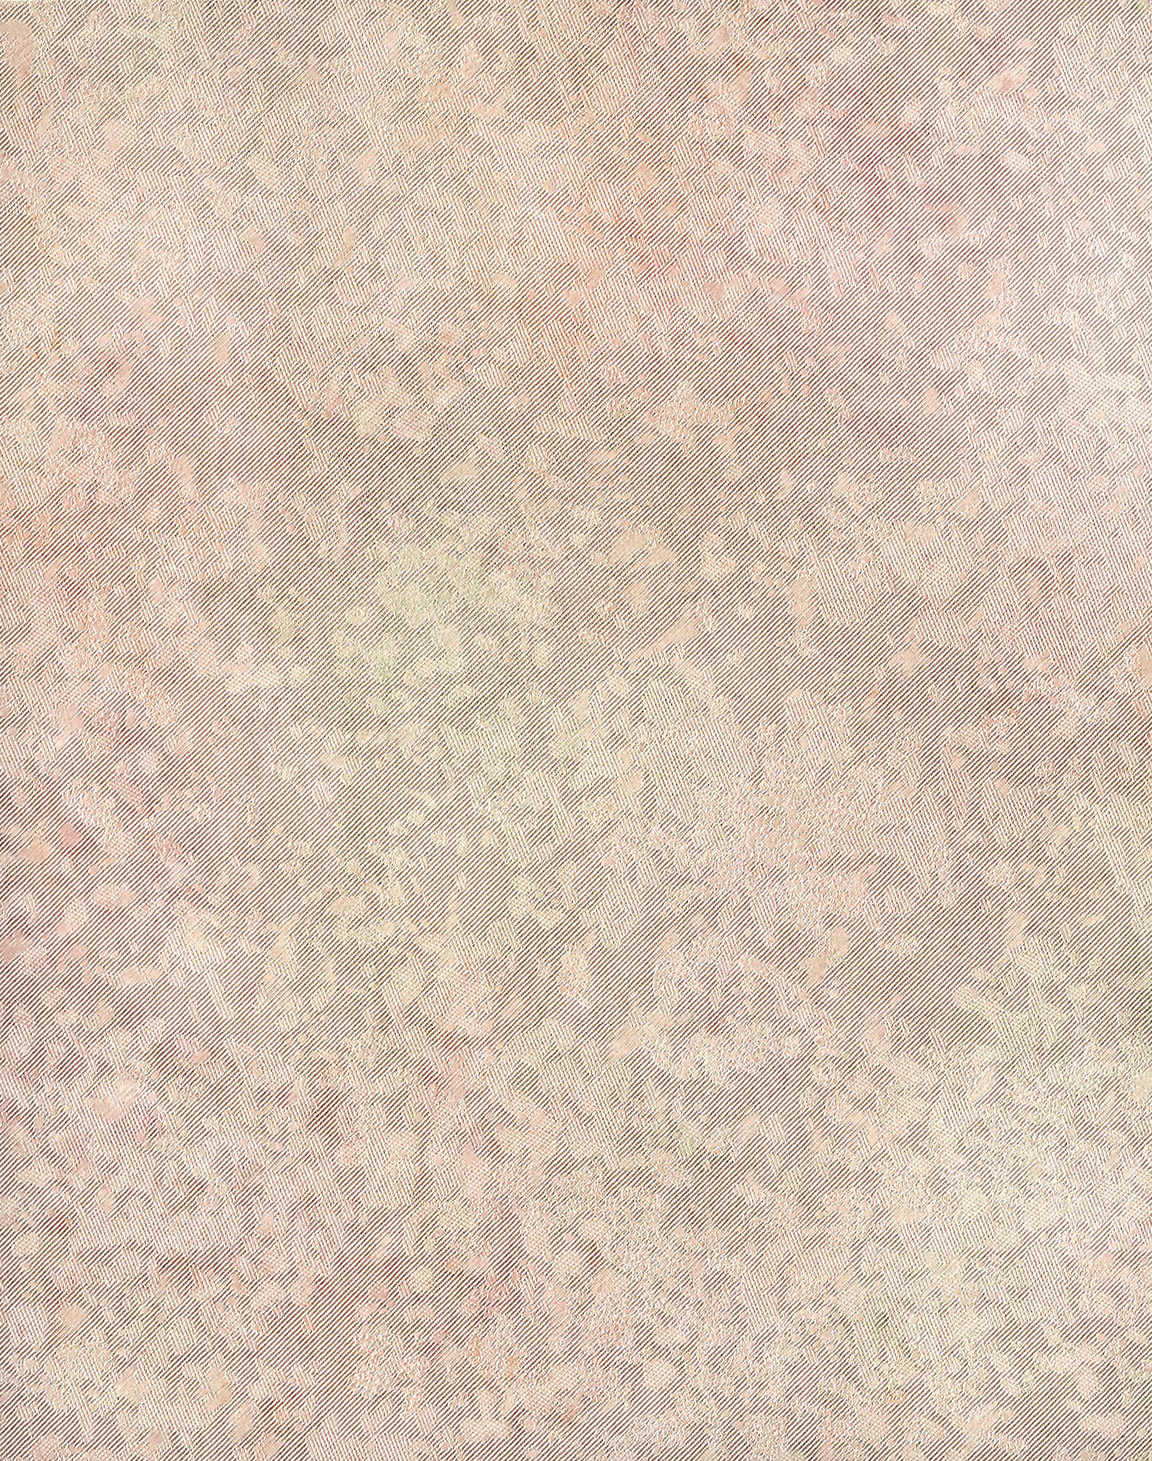 Wall Paper Watercolor Texture